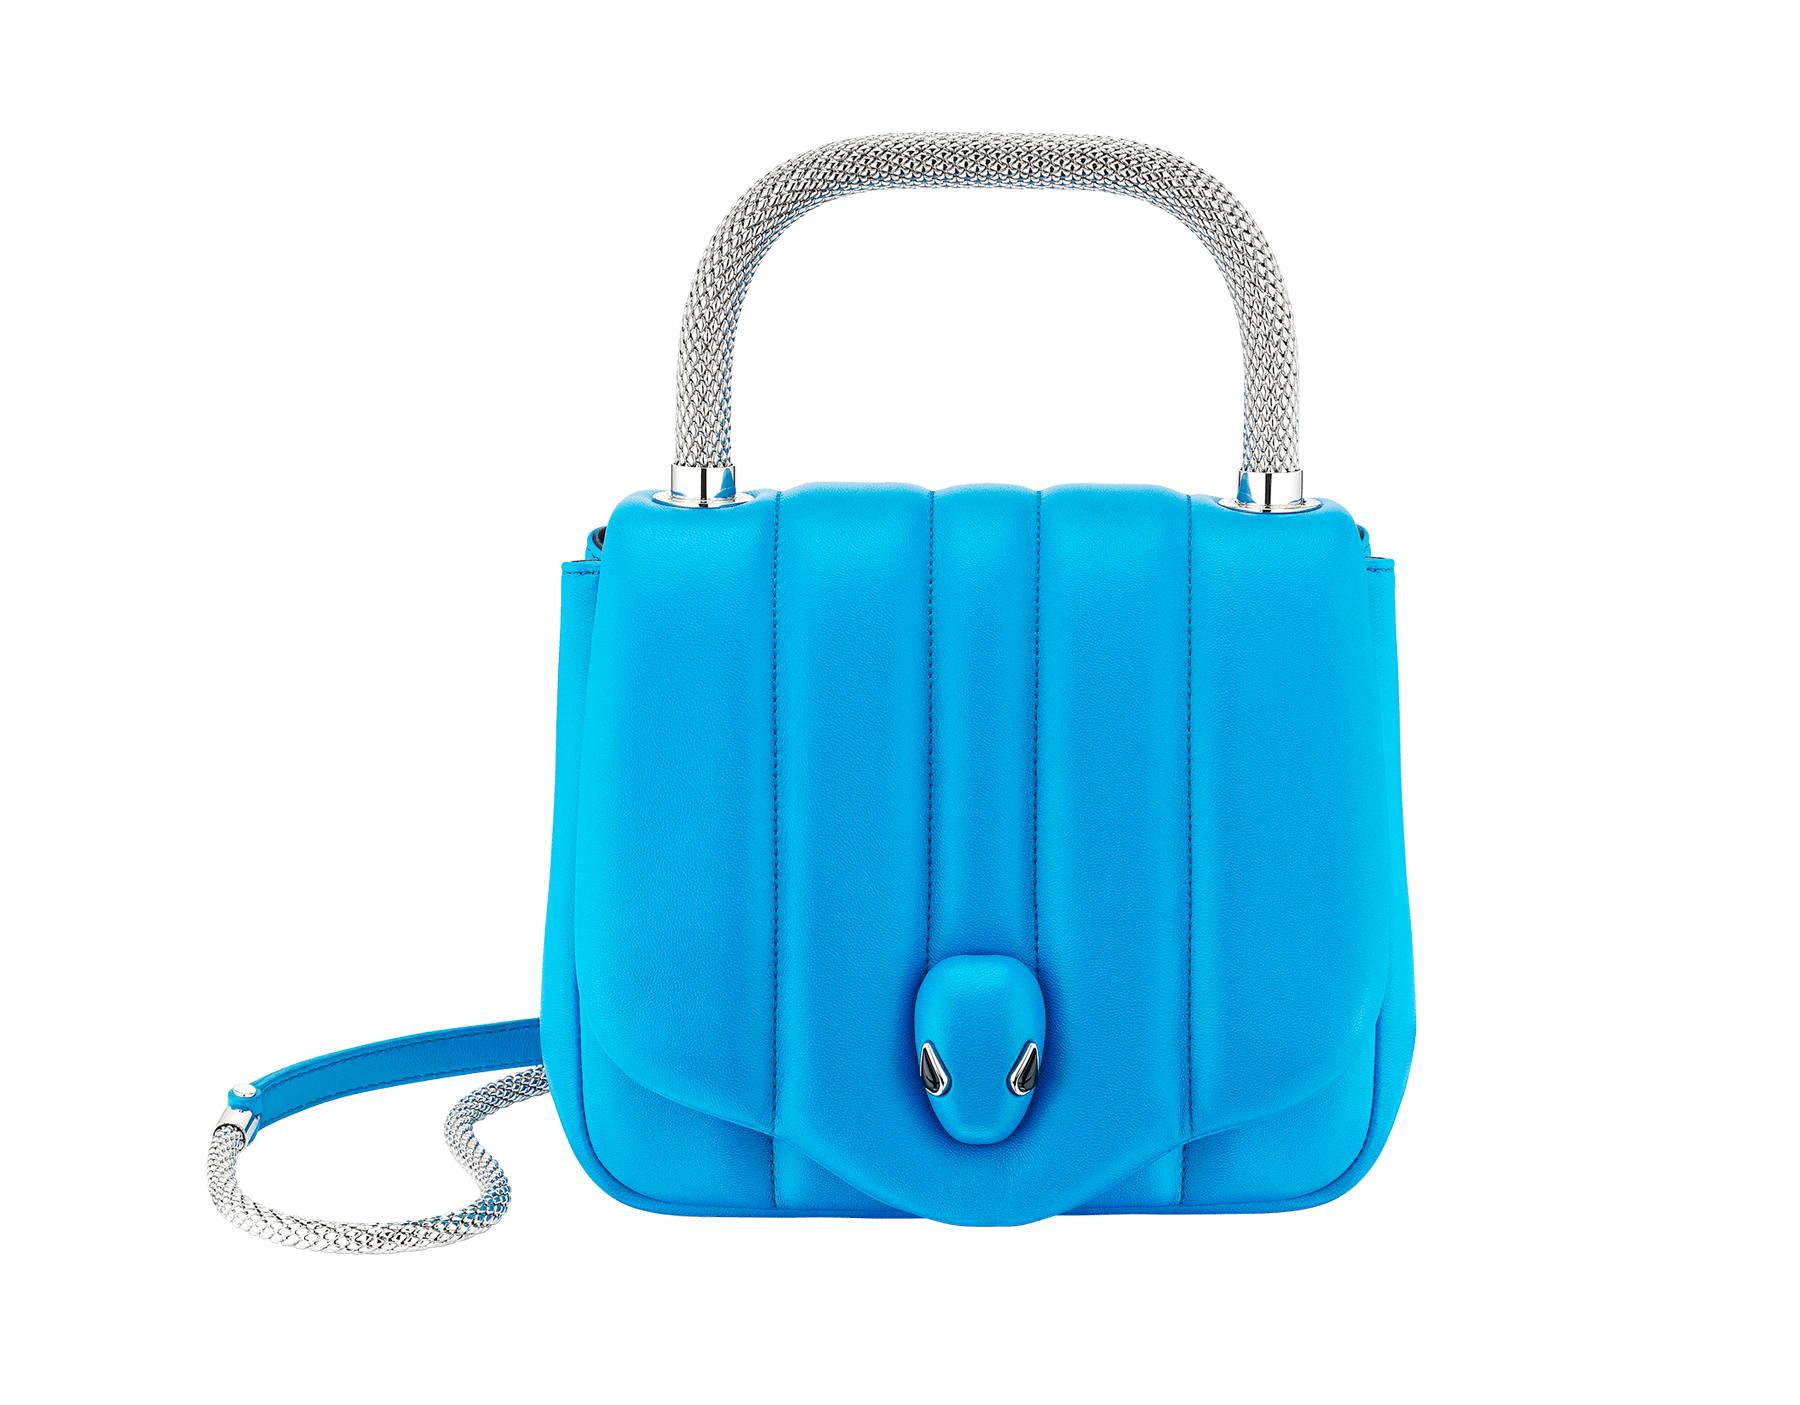 """Ambush x Bvlgari"" top handle bag in bright blue nappa leather. New Serpenti head closure in palladium plated brass dressed with bright blue nappa leather, finished with seductive black onyx eyes. Limited edition. 290344 image 1"